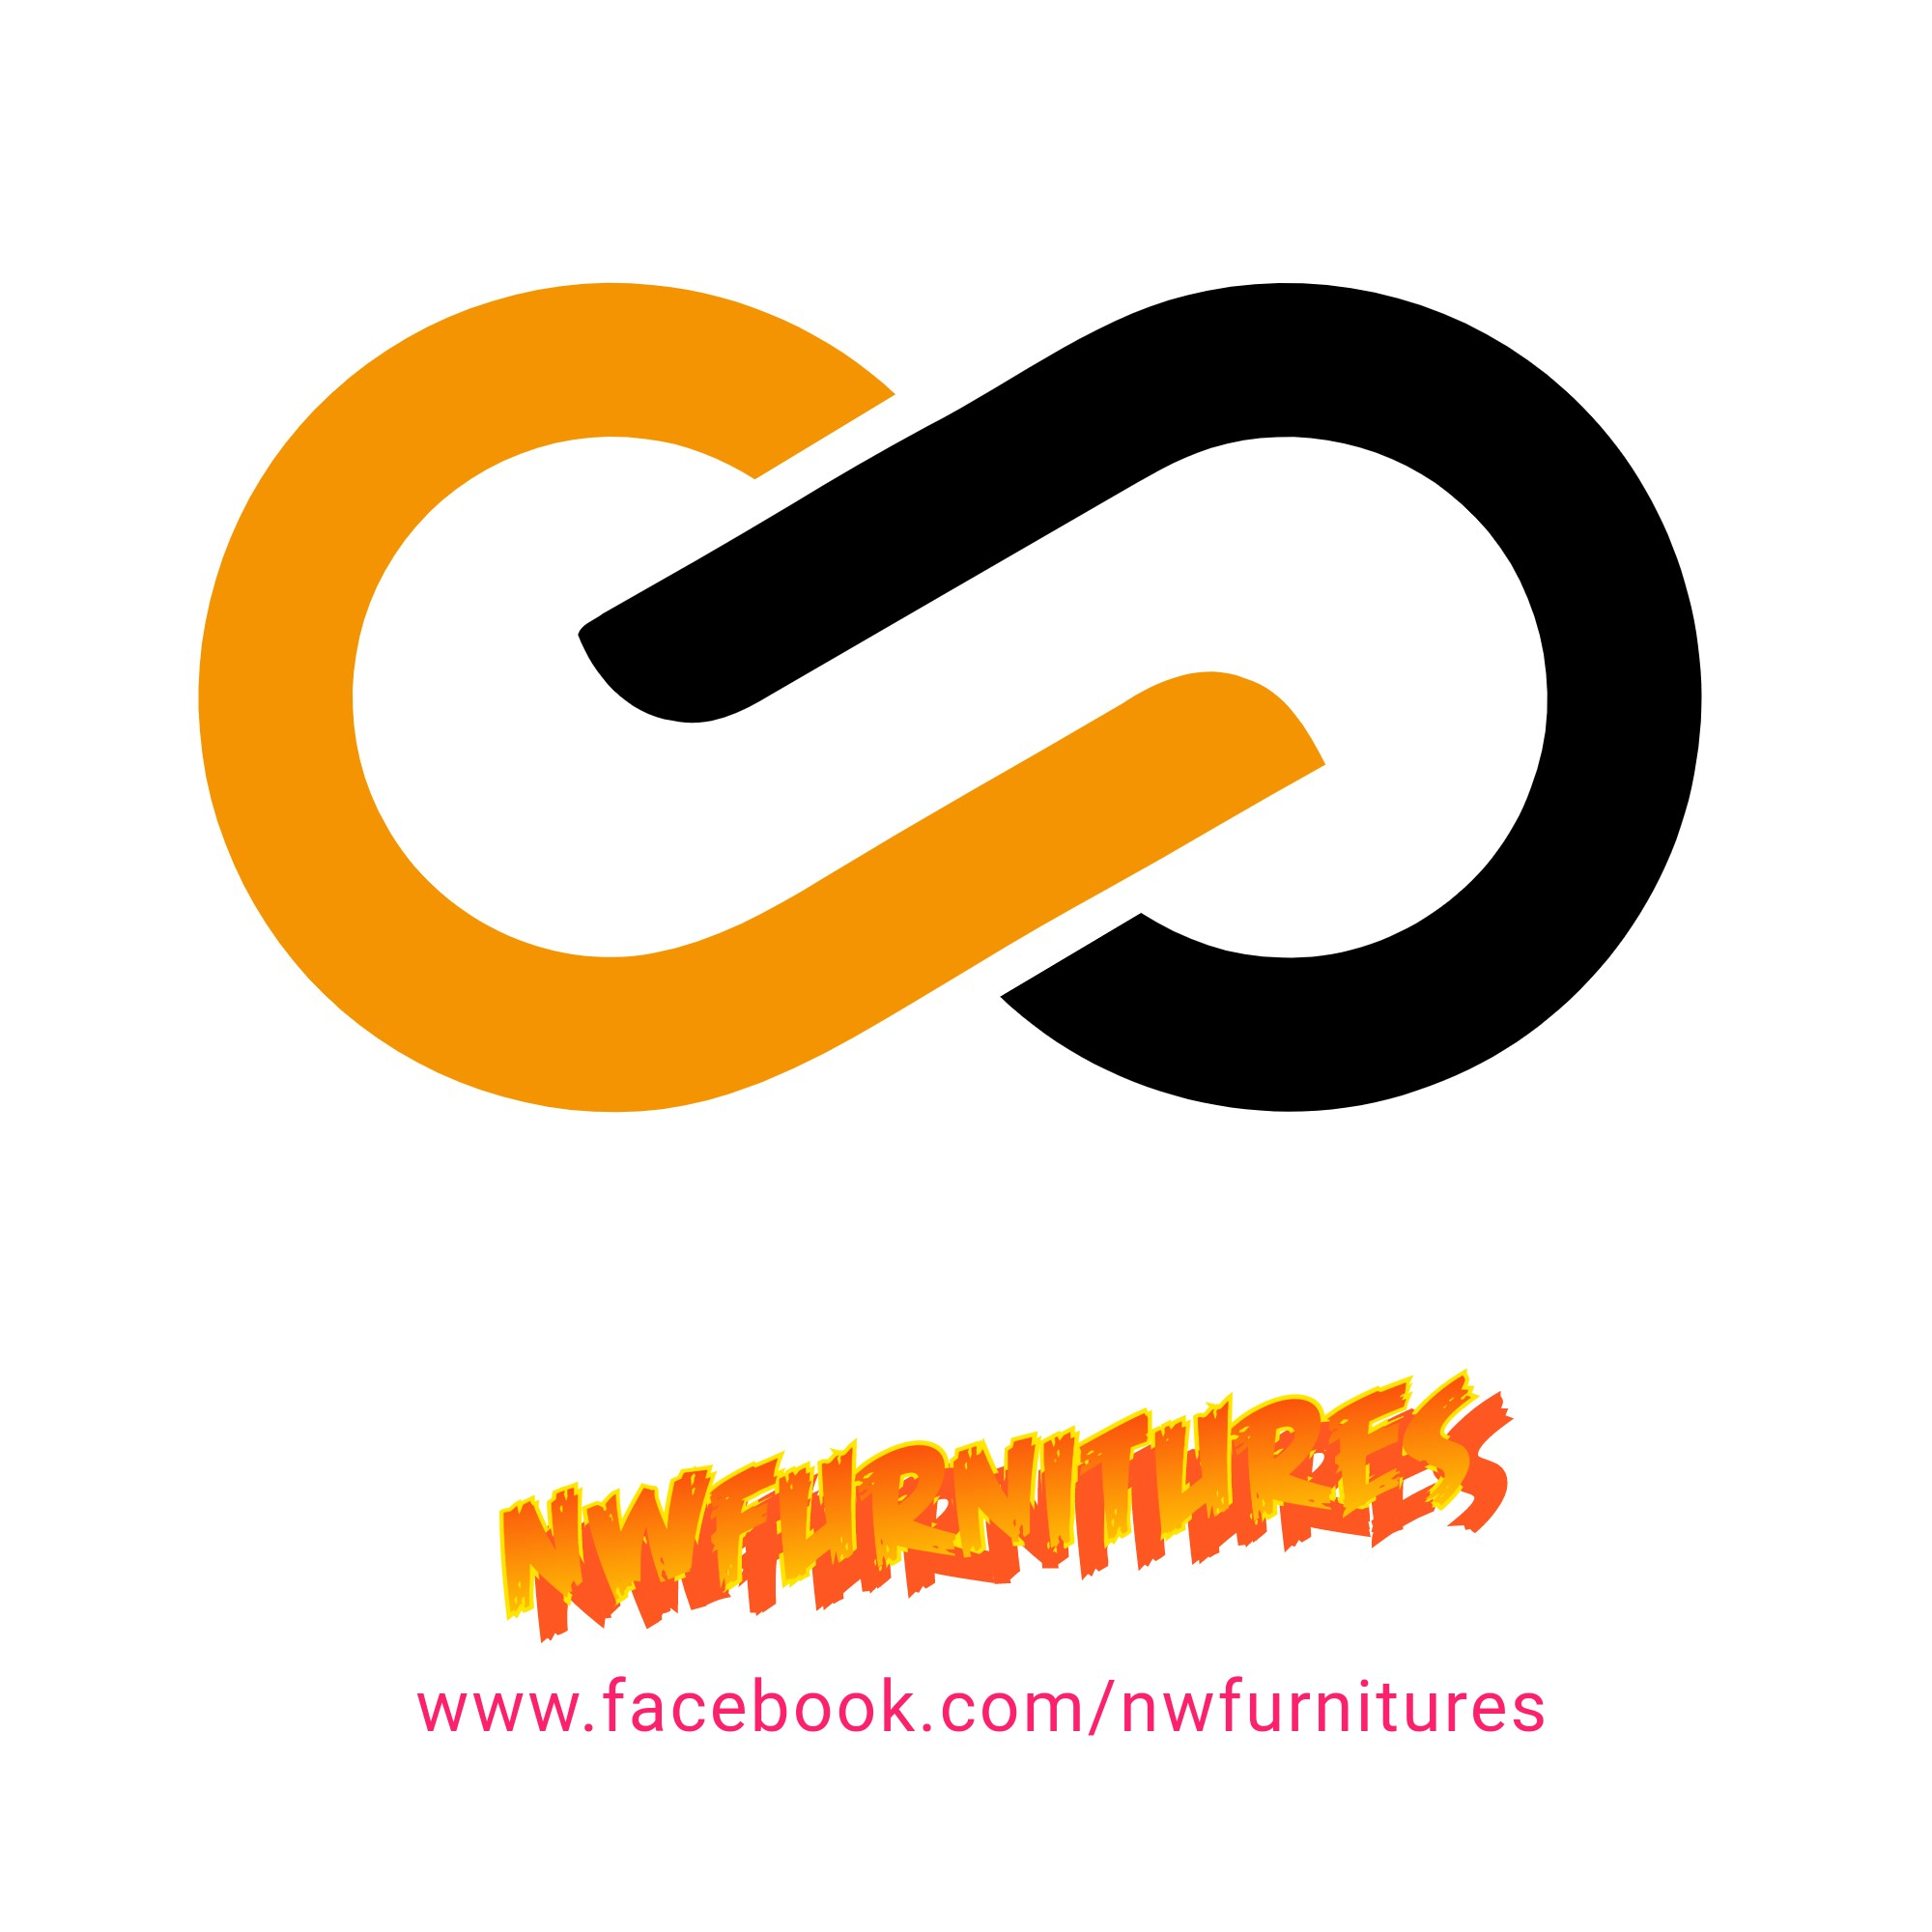 Nwfurnitures